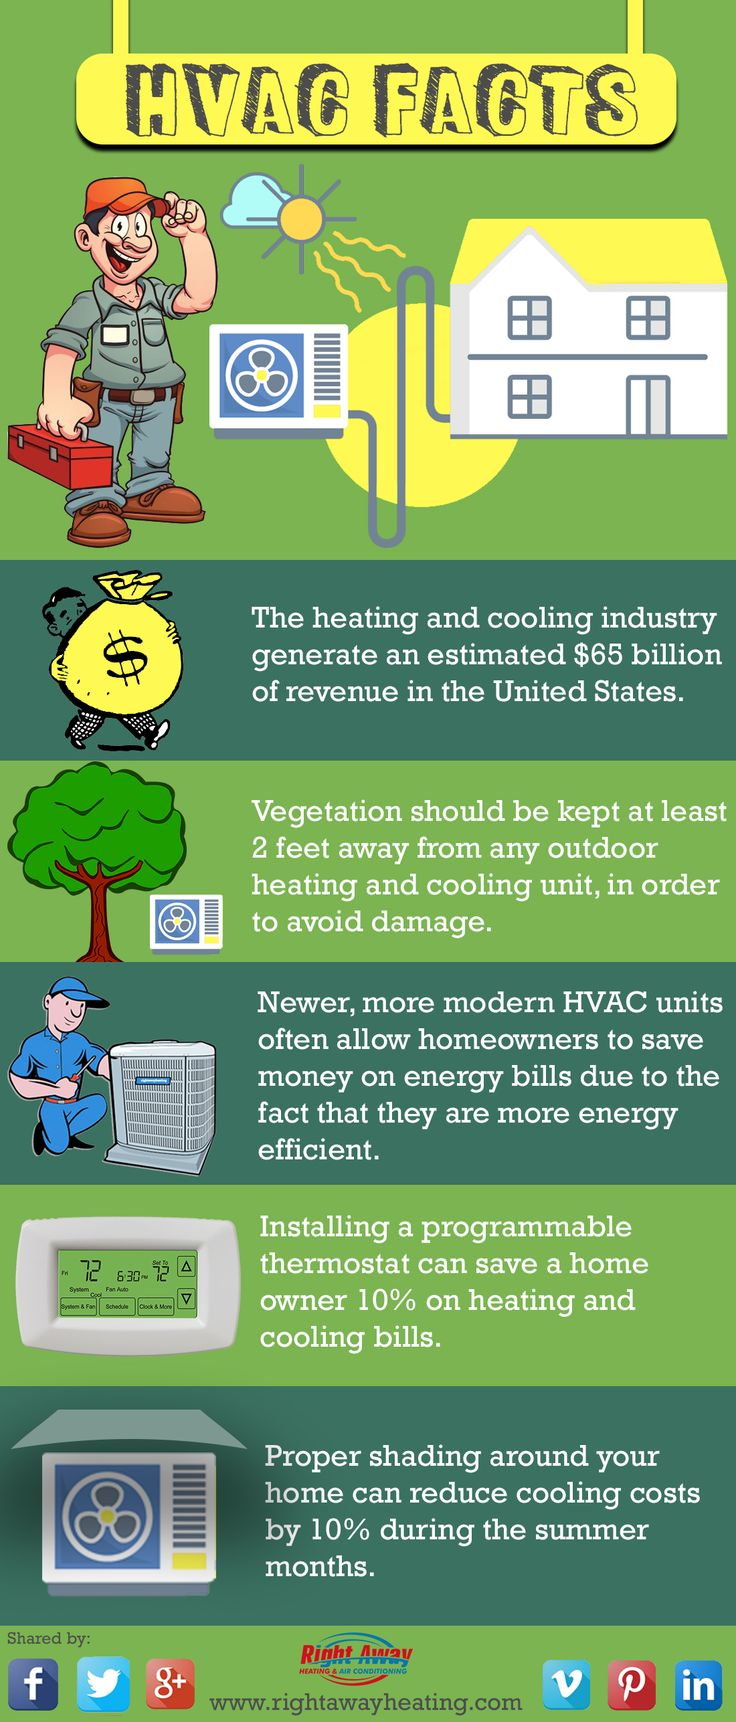 HVAC Facts The heating and cooling industry generate an